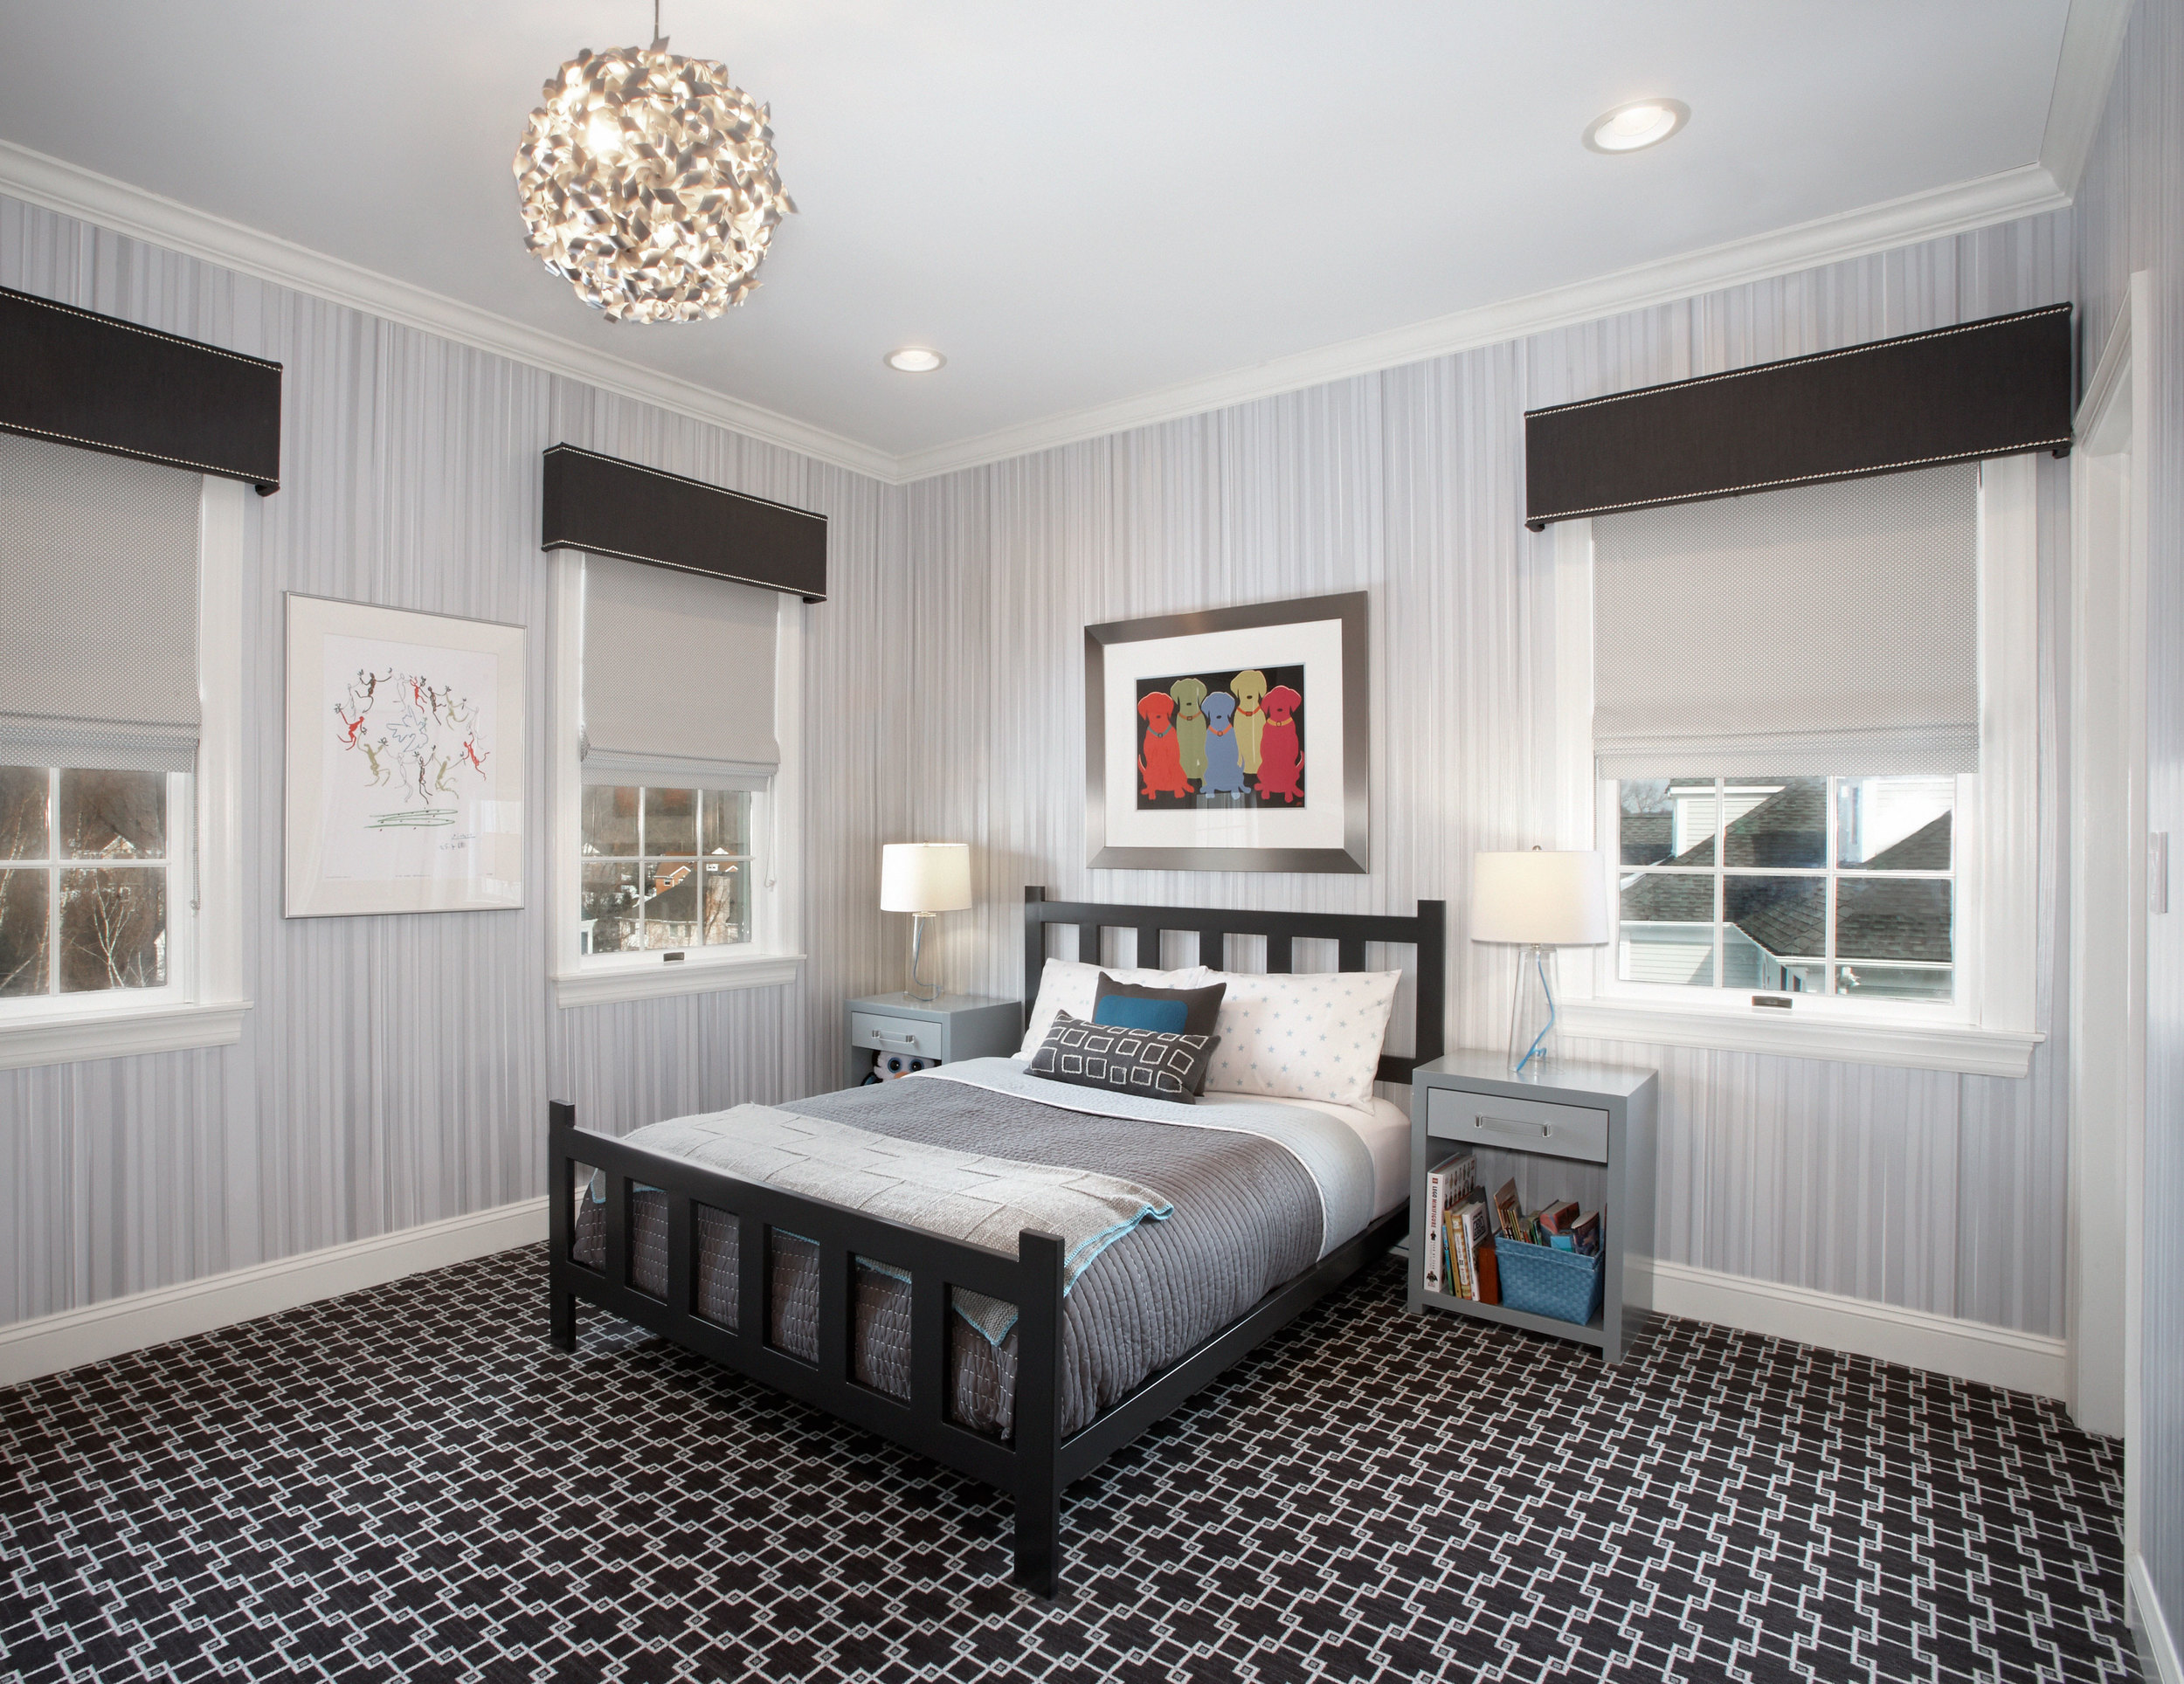 Kids Room Design in West Harrison NY by NYC designer Evelyn Benatar